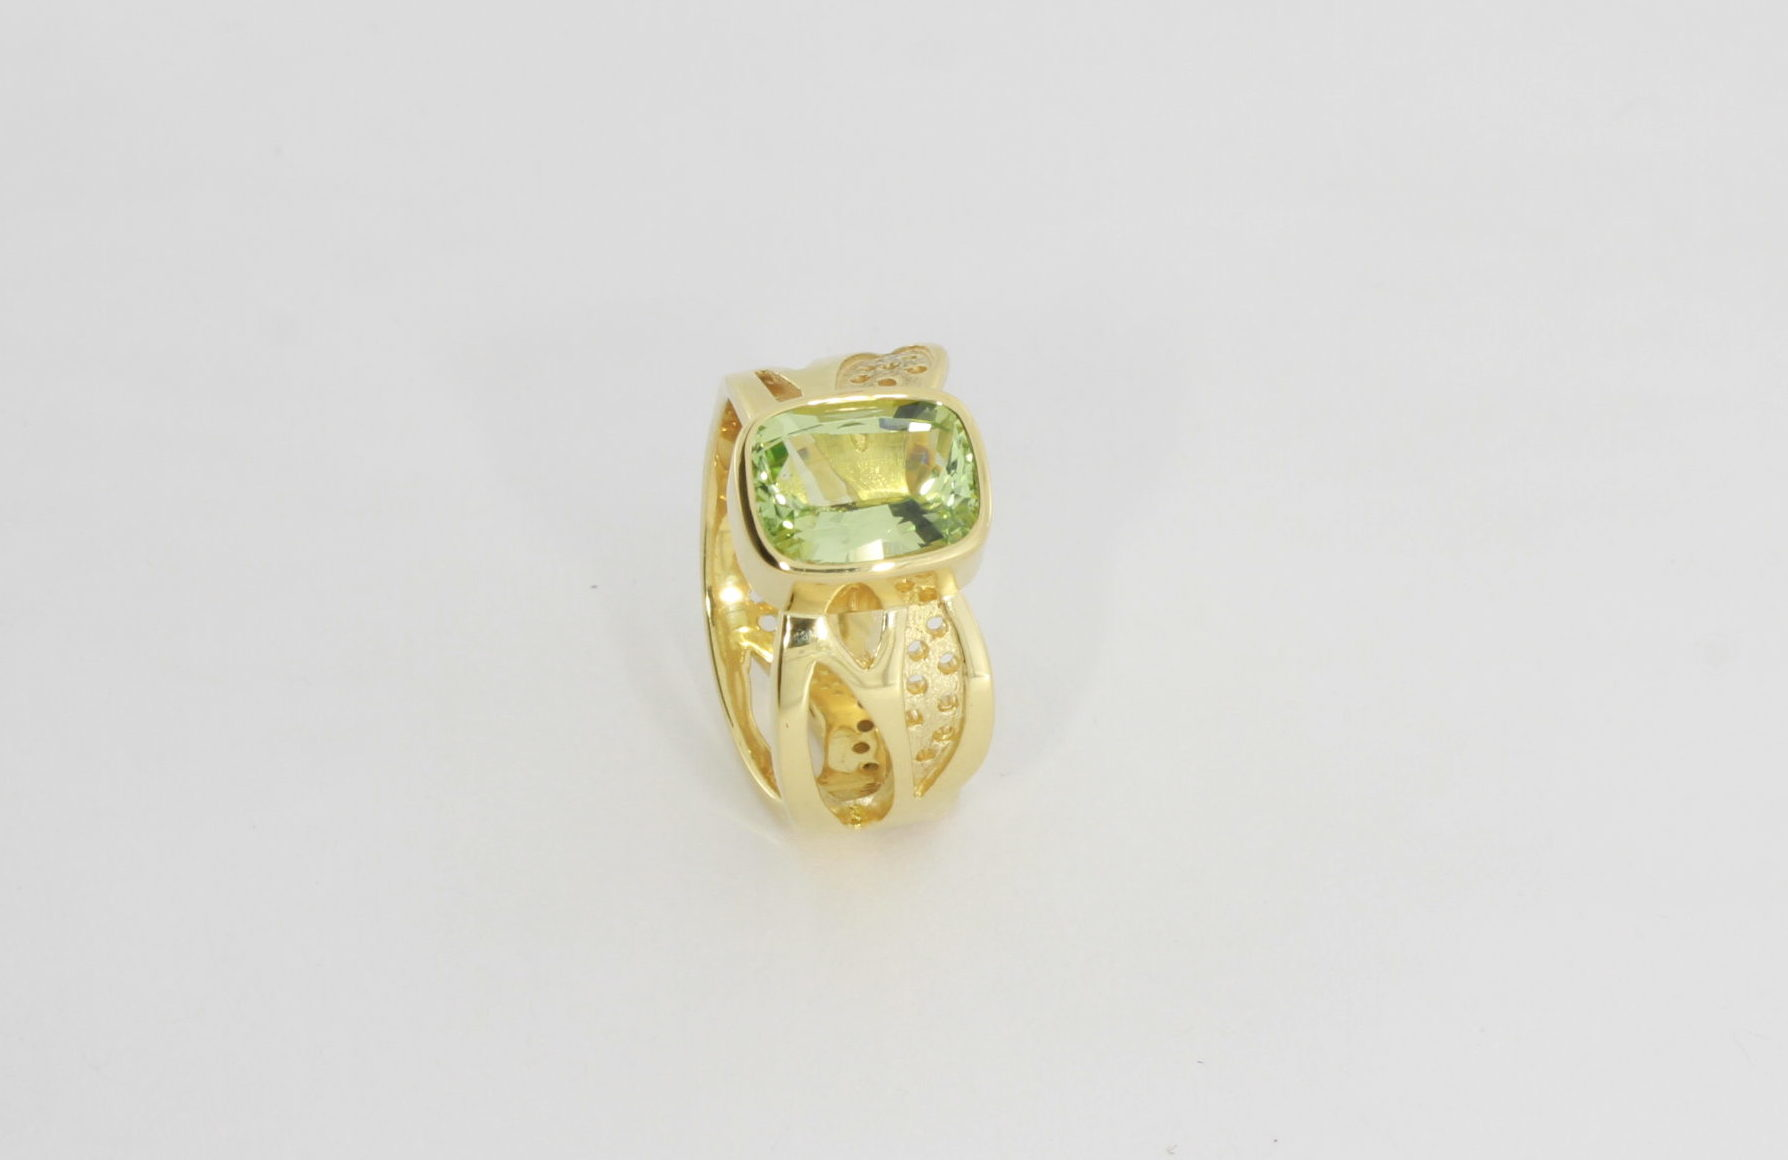 Payet gallery bespoke ring chrysoberyl set in 18ct yellow gold